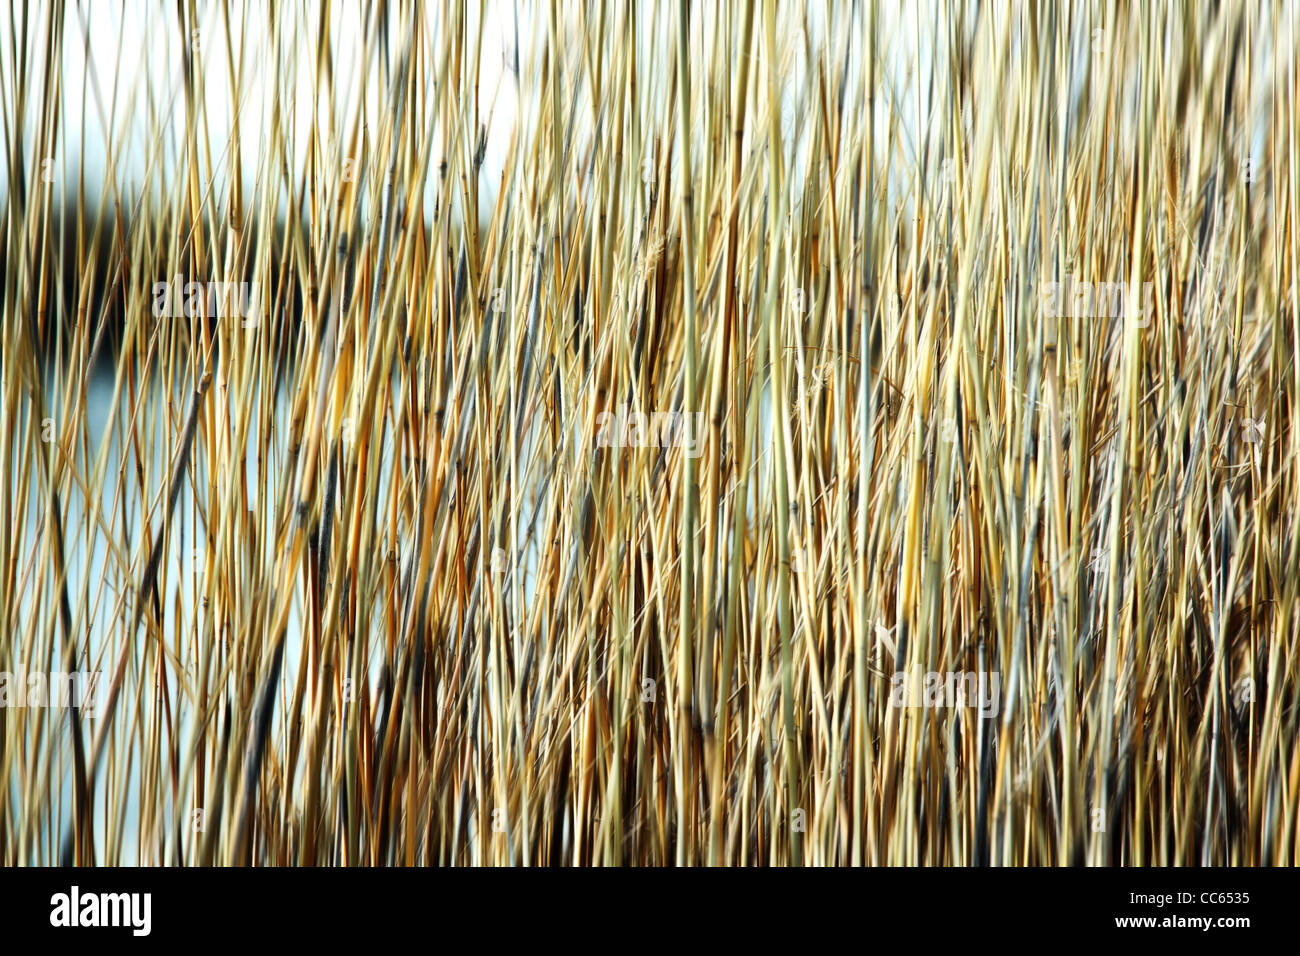 Blured reed background. - Stock Image